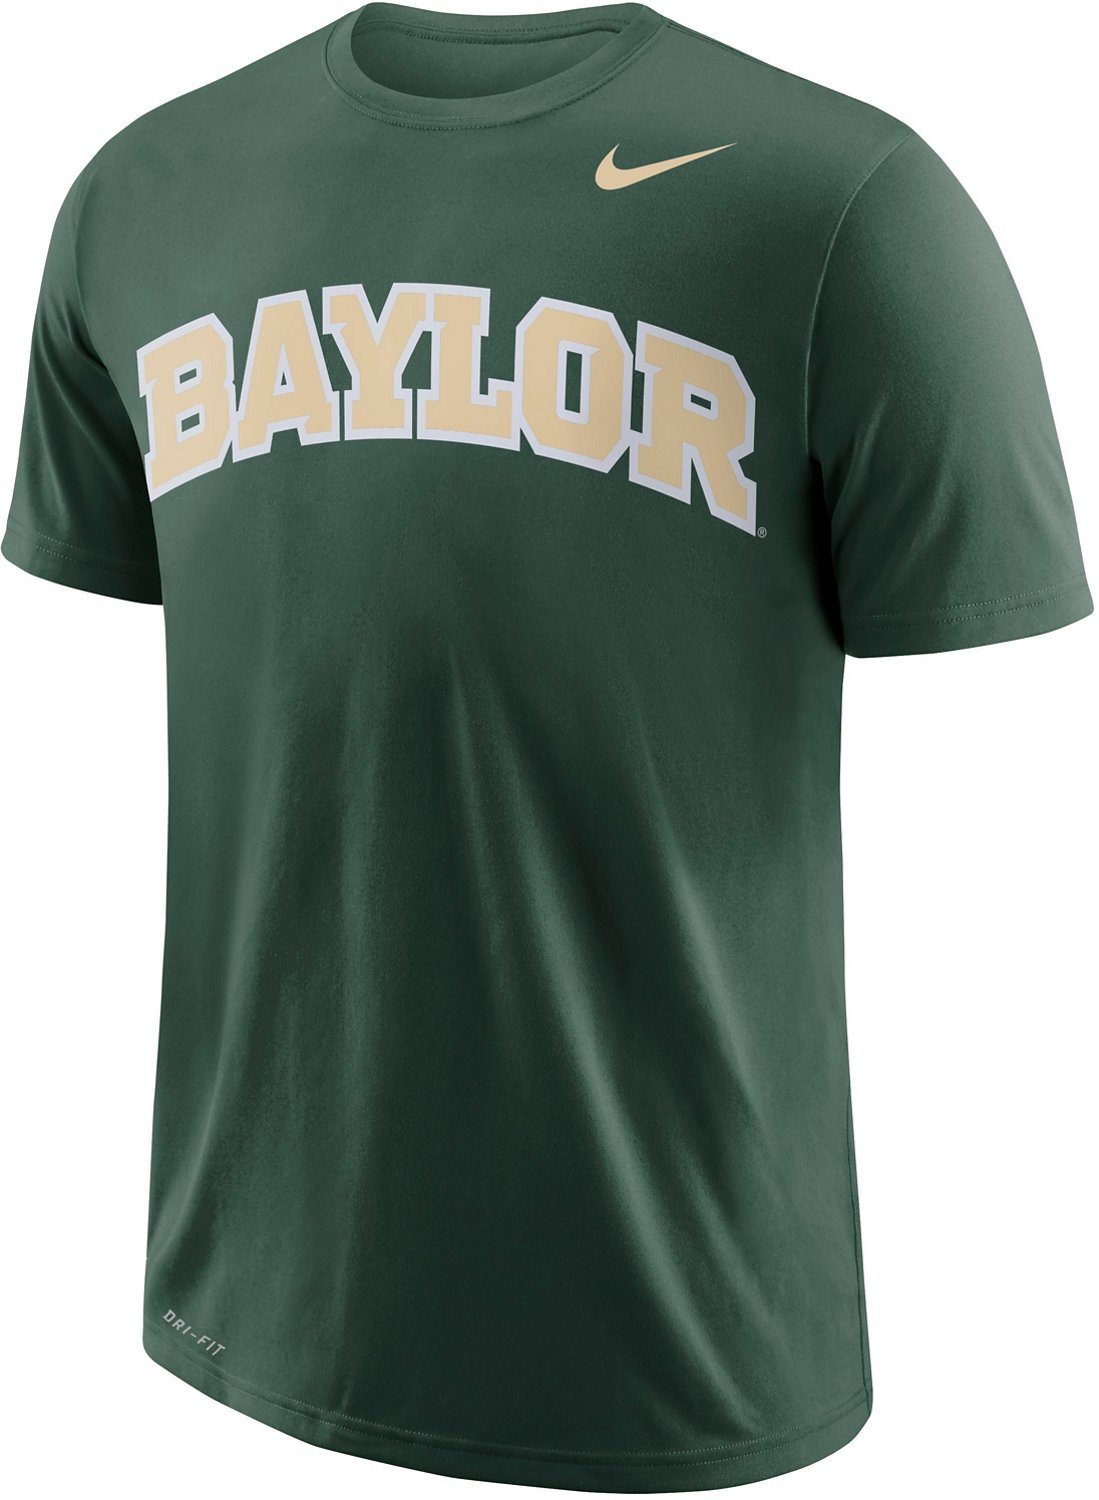 Nike Men's Baylor University Wordmark T-shirt